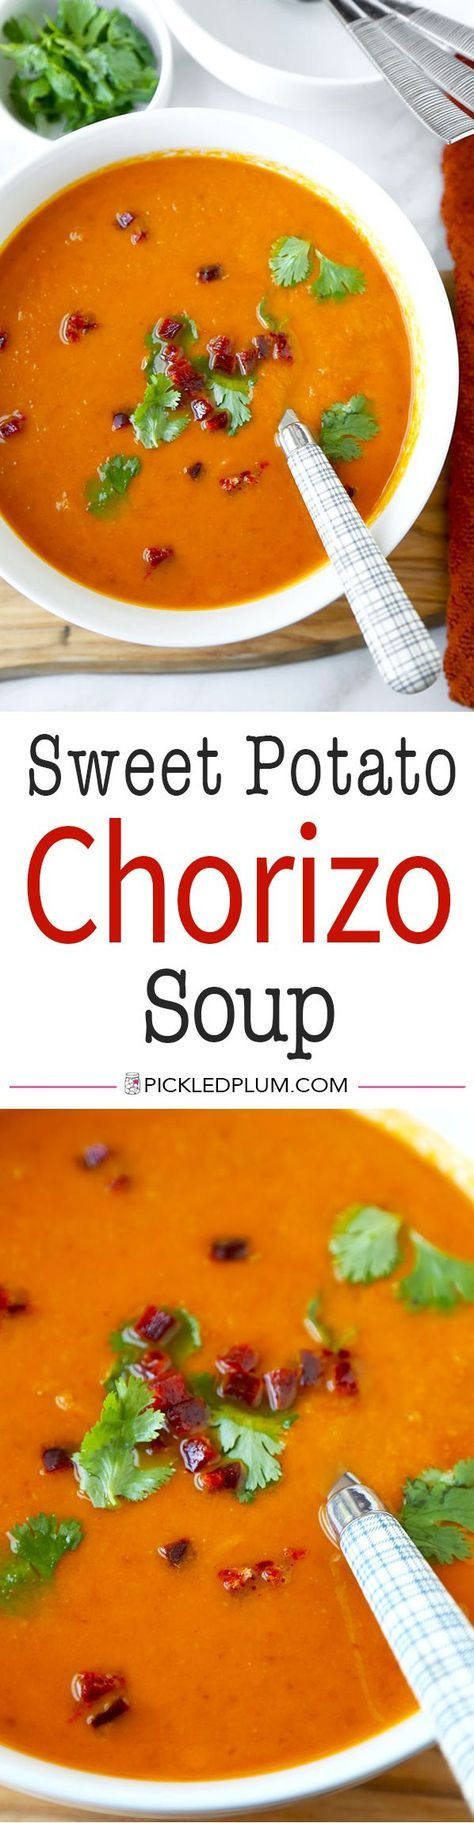 Sweet Potato Chorizo Soup - Loaded with fall vegetables, this smoky Sweet Potato Chorizo Soup Recipe celebrates the changing seasons. Sweet potato soup never tasted so good!